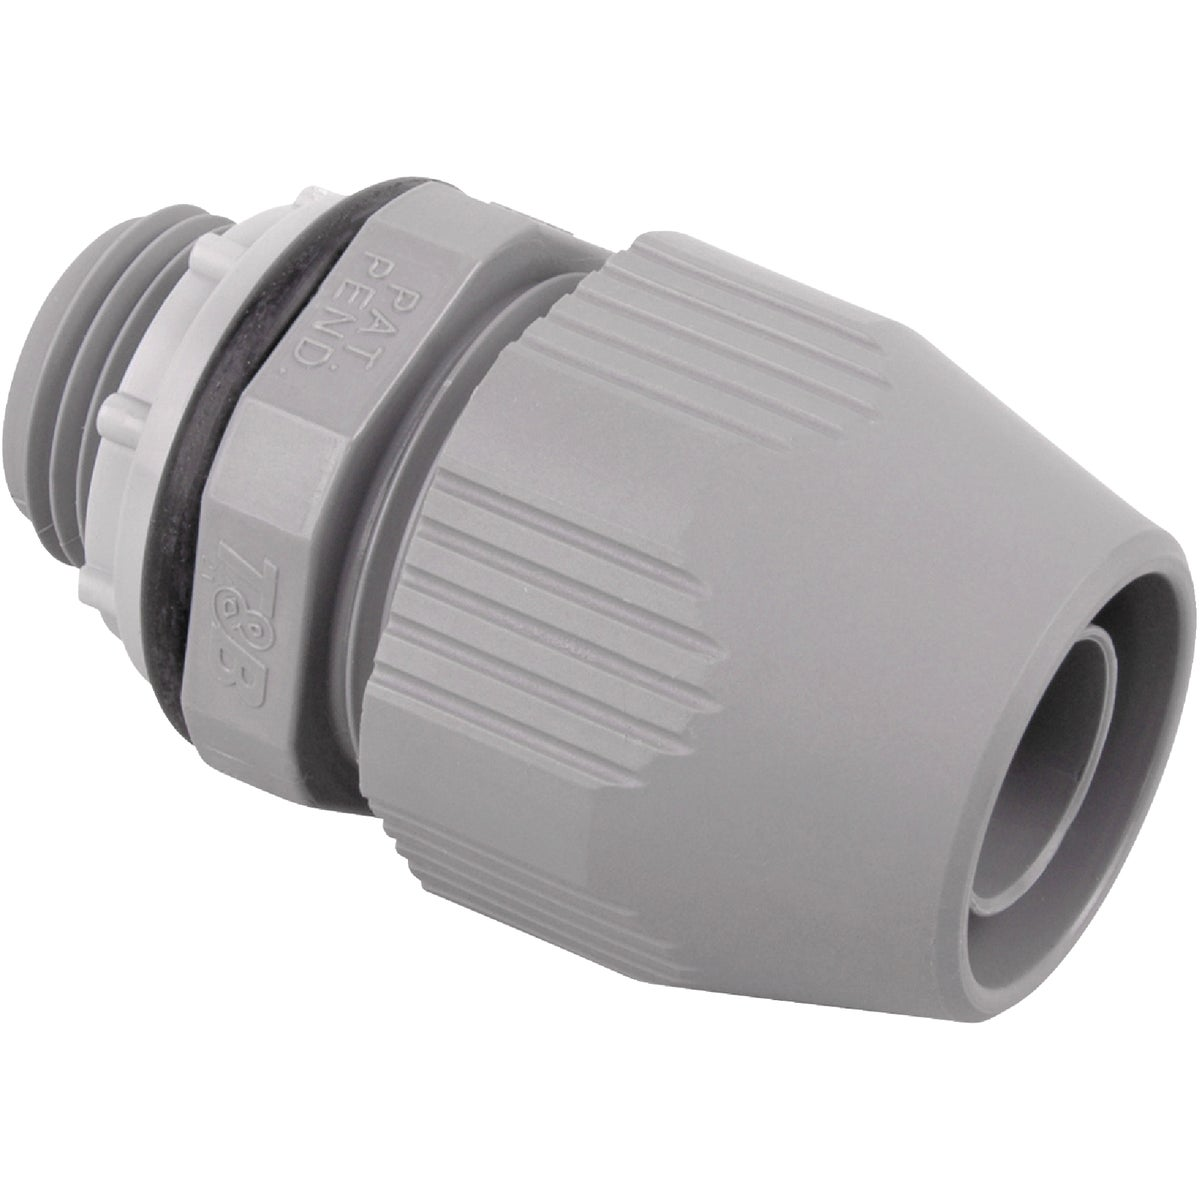 "1/2"" LIQTITE CONNECTOR - LT501-1 by Thomas & Betts"